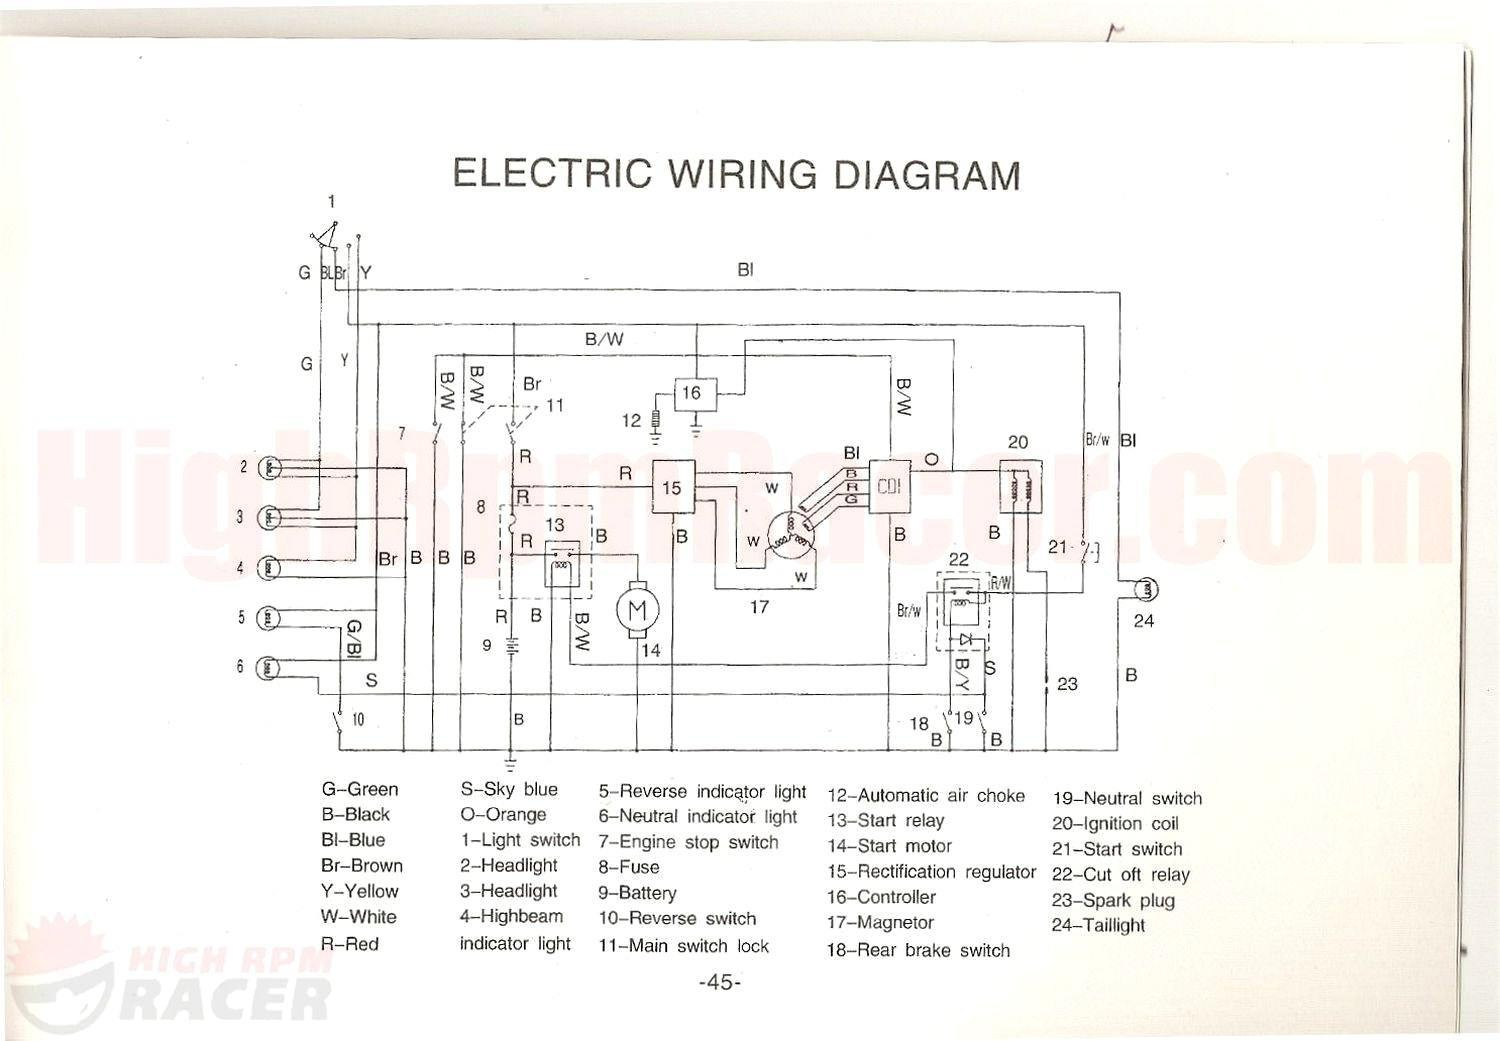 hight resolution of arctic cat wiring diagram for 454 4x4 atv trusted wiring diagram rh dafpods co 2001 arctic cat 250 wiring diagram 2004 arctic cat 400 4x4